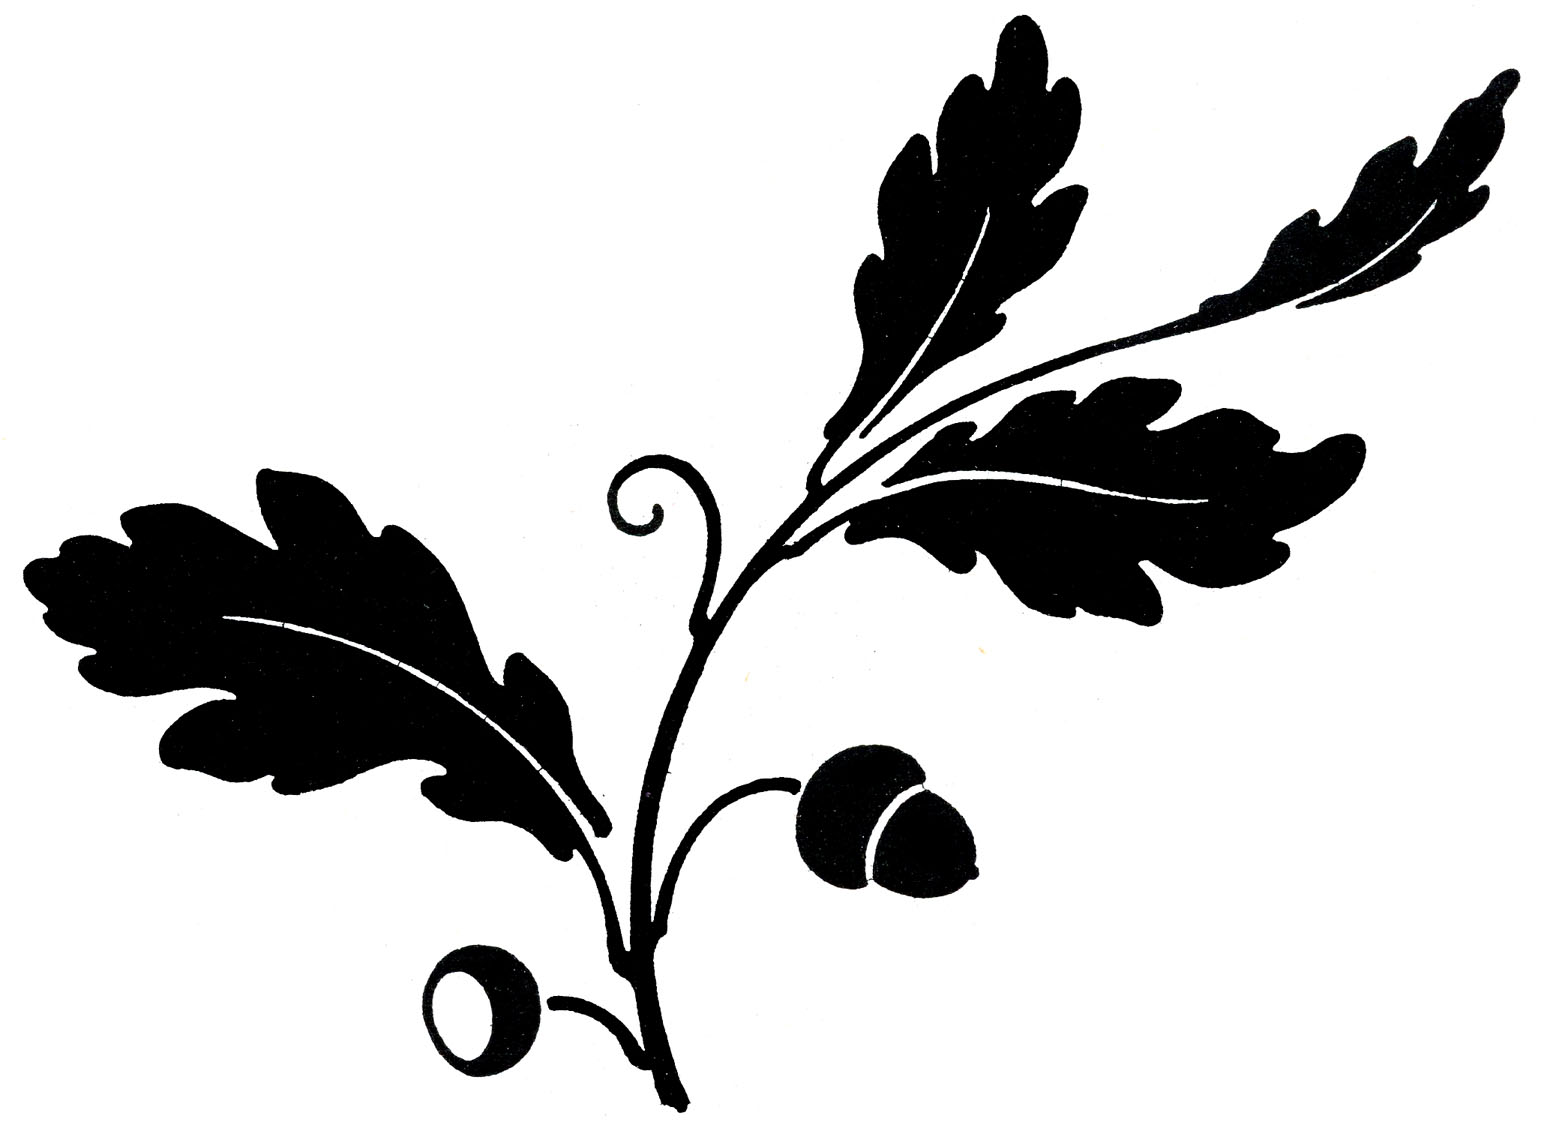 Oak Leaves Silhouette with Acorns